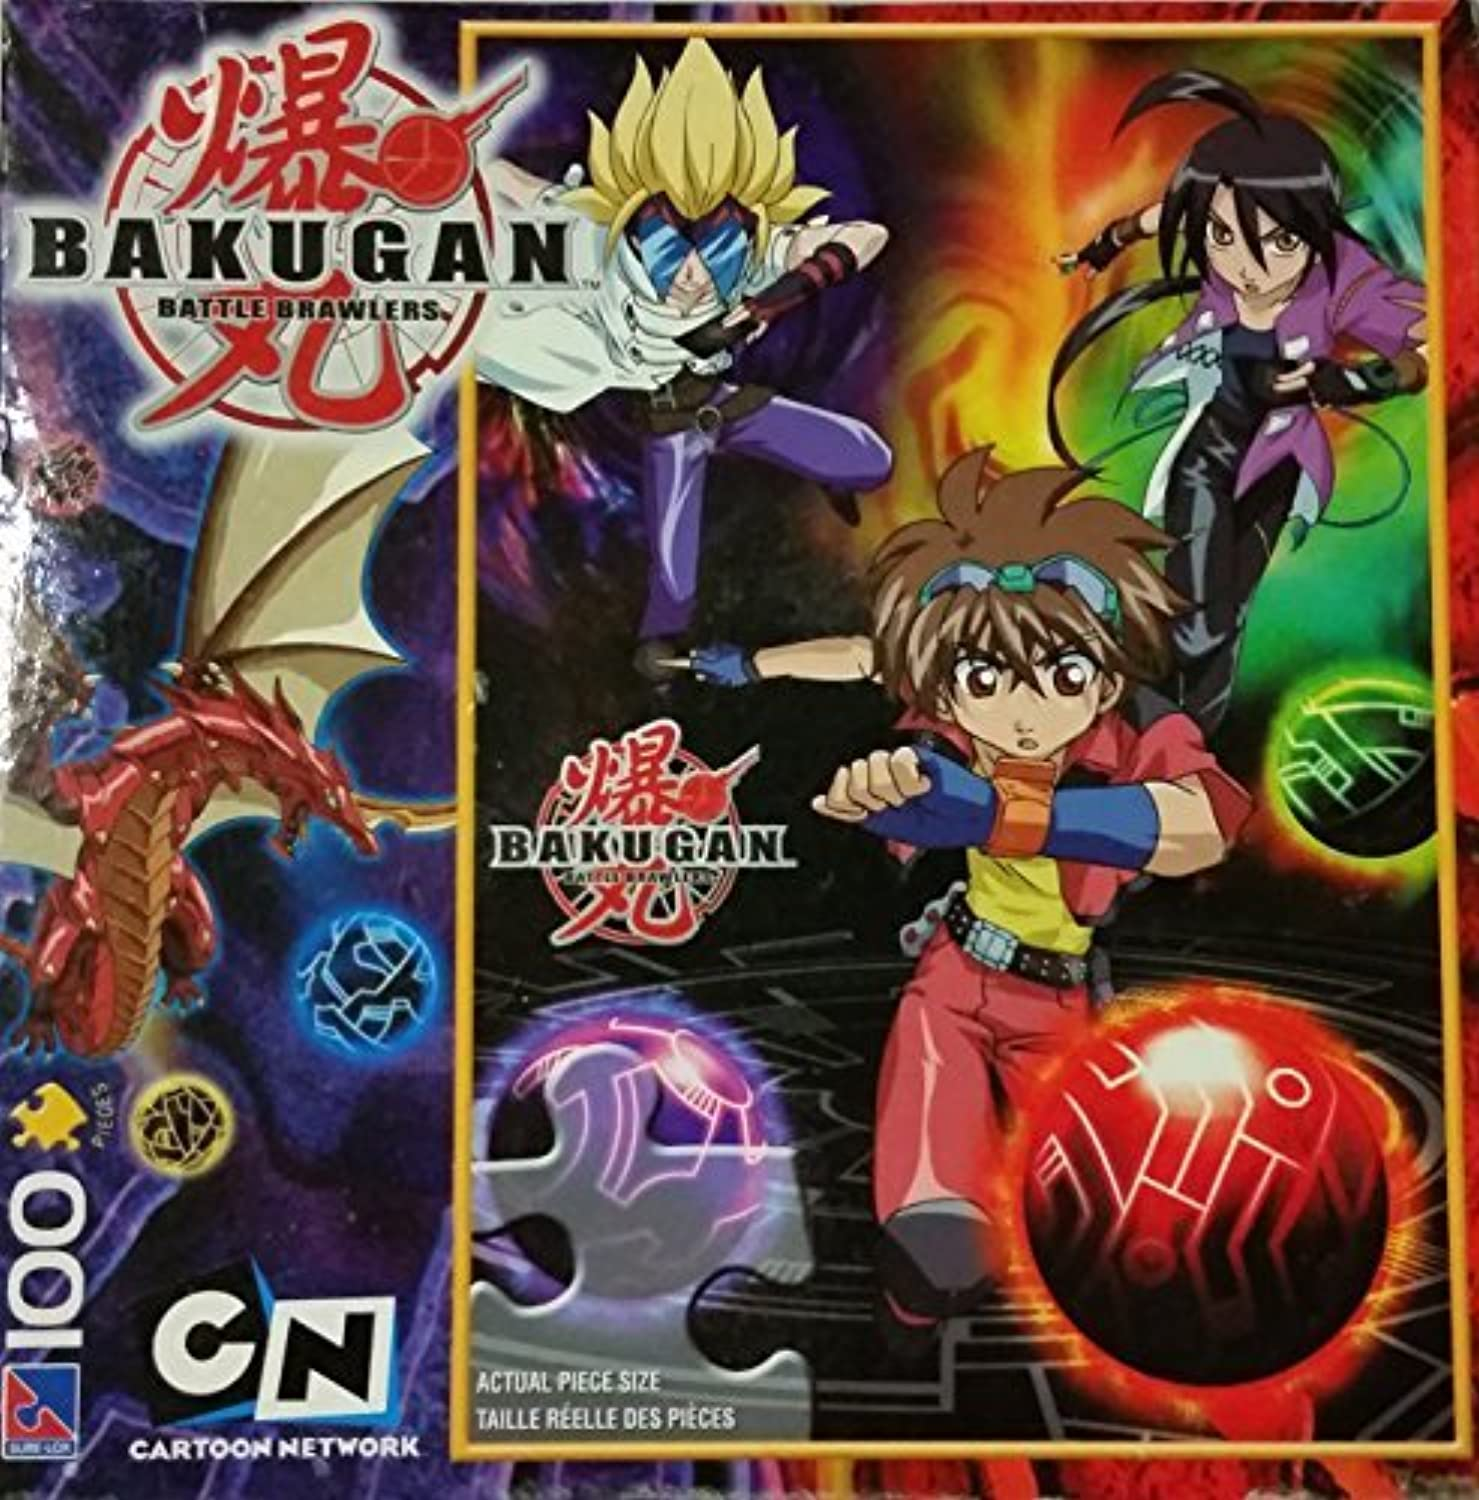 Bakugan Battle Brawlers 100 Piece Puzzle Dan by Bakugan